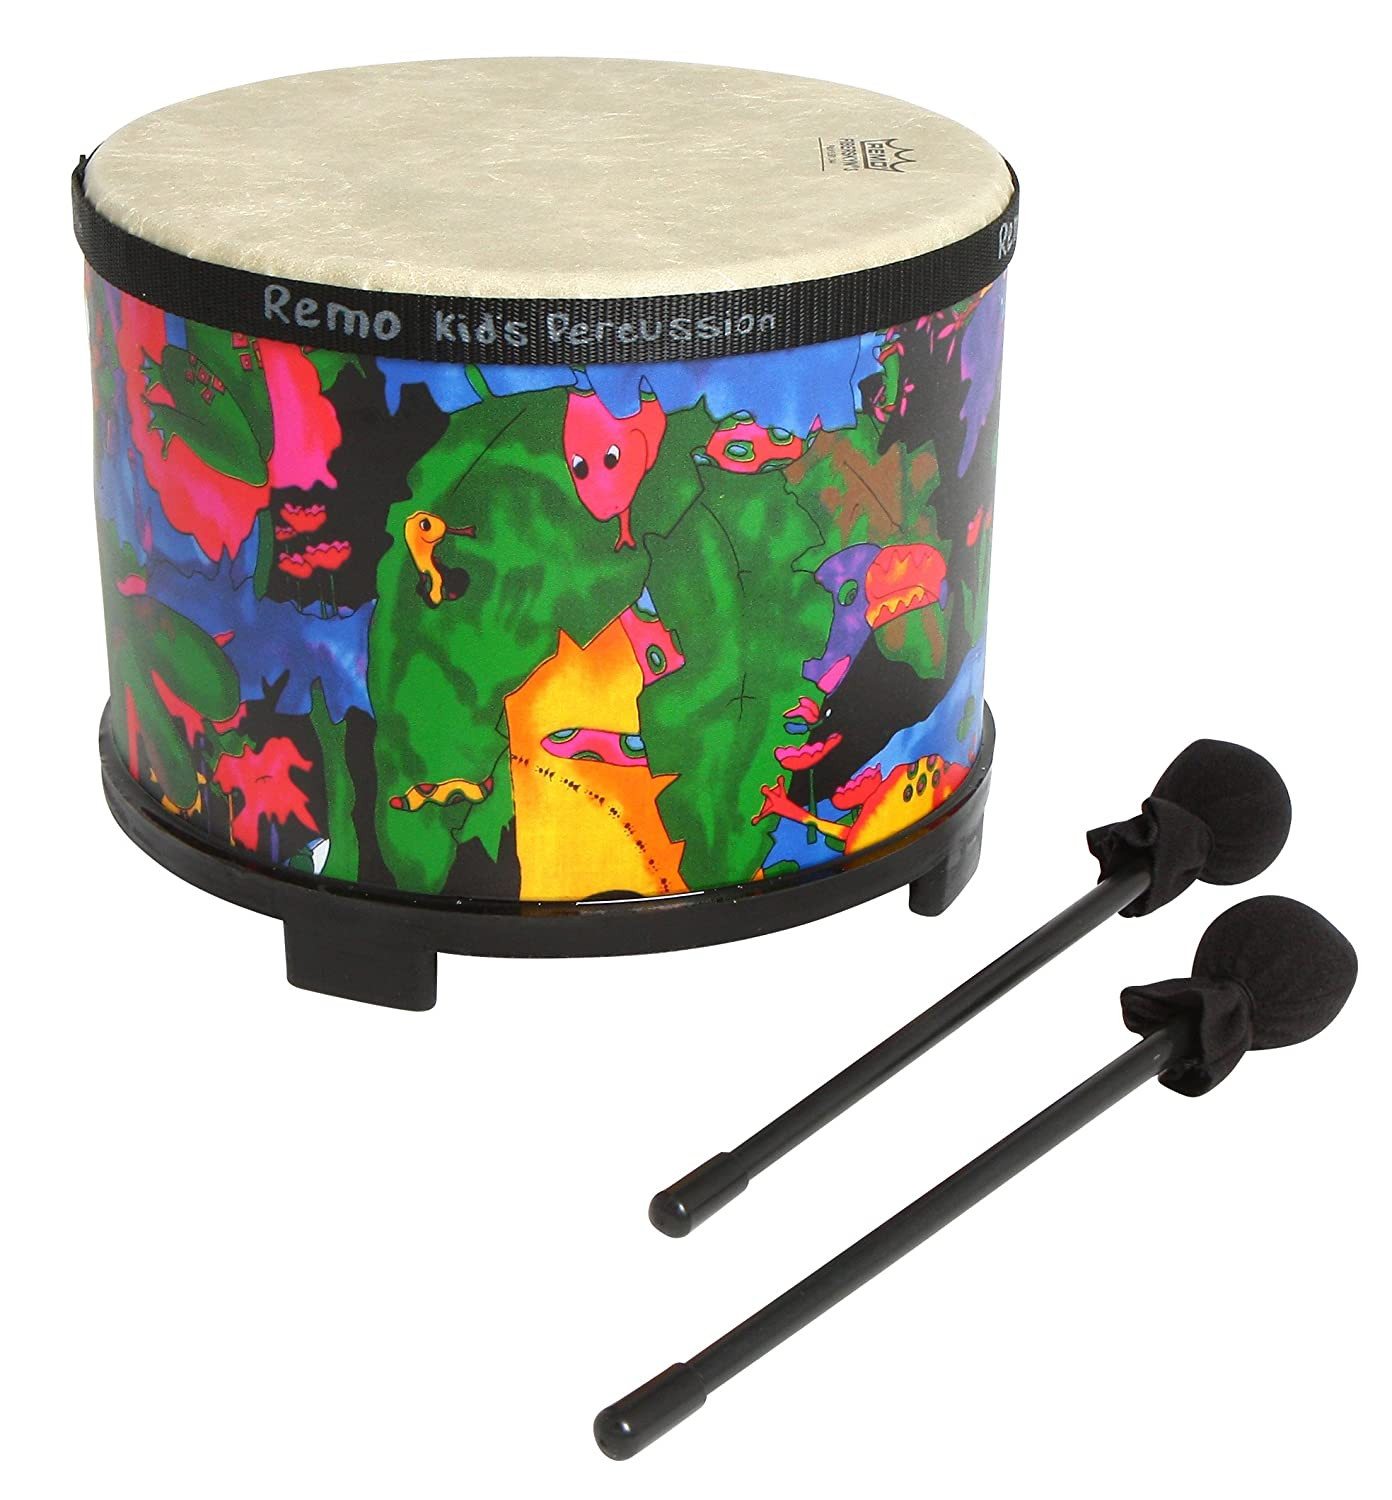 "Remo KD-5400-01 Kids Percussion Bongo Drum - Fabric Rain Forest, 5""-6"" 5""-6"""